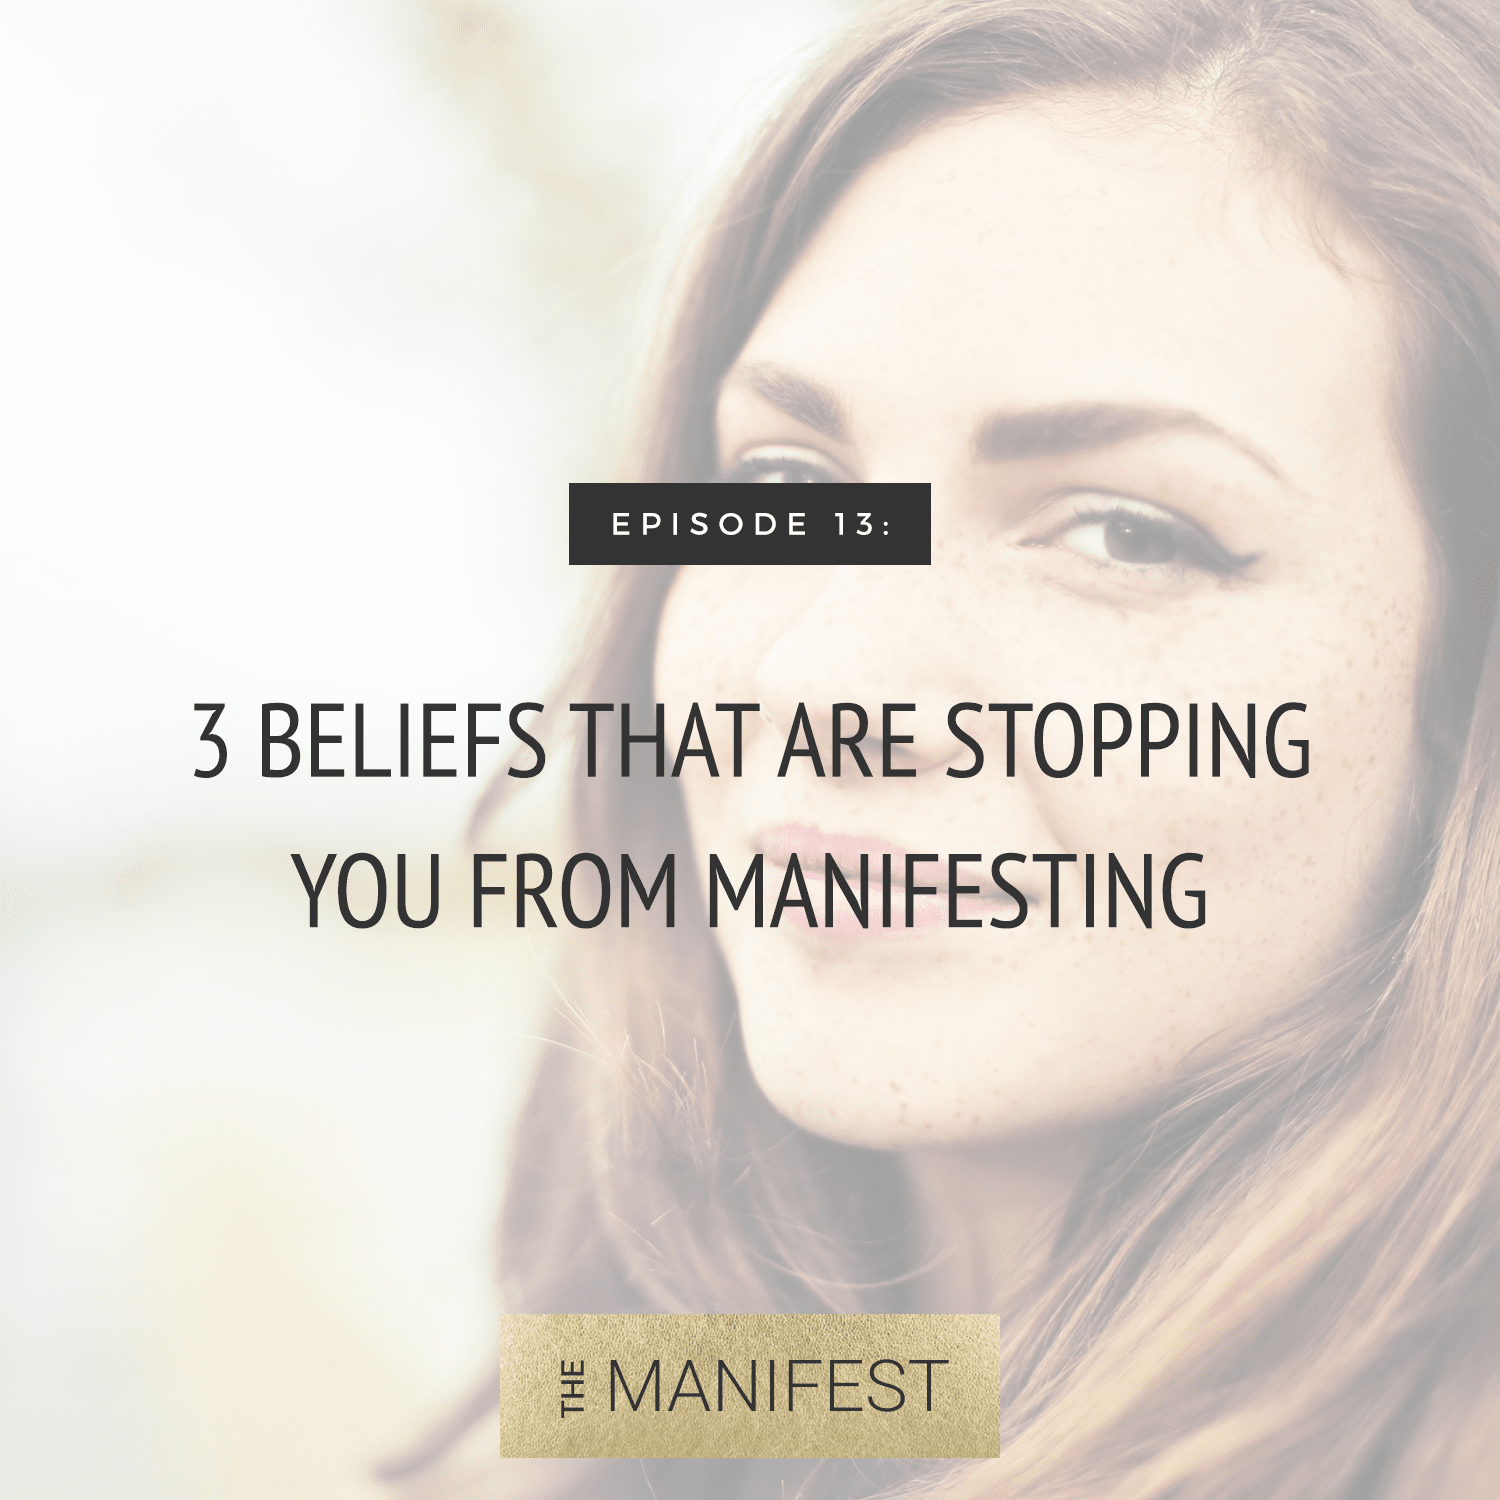 Episode 13: 3 Beliefs Stopping You From Manifesting